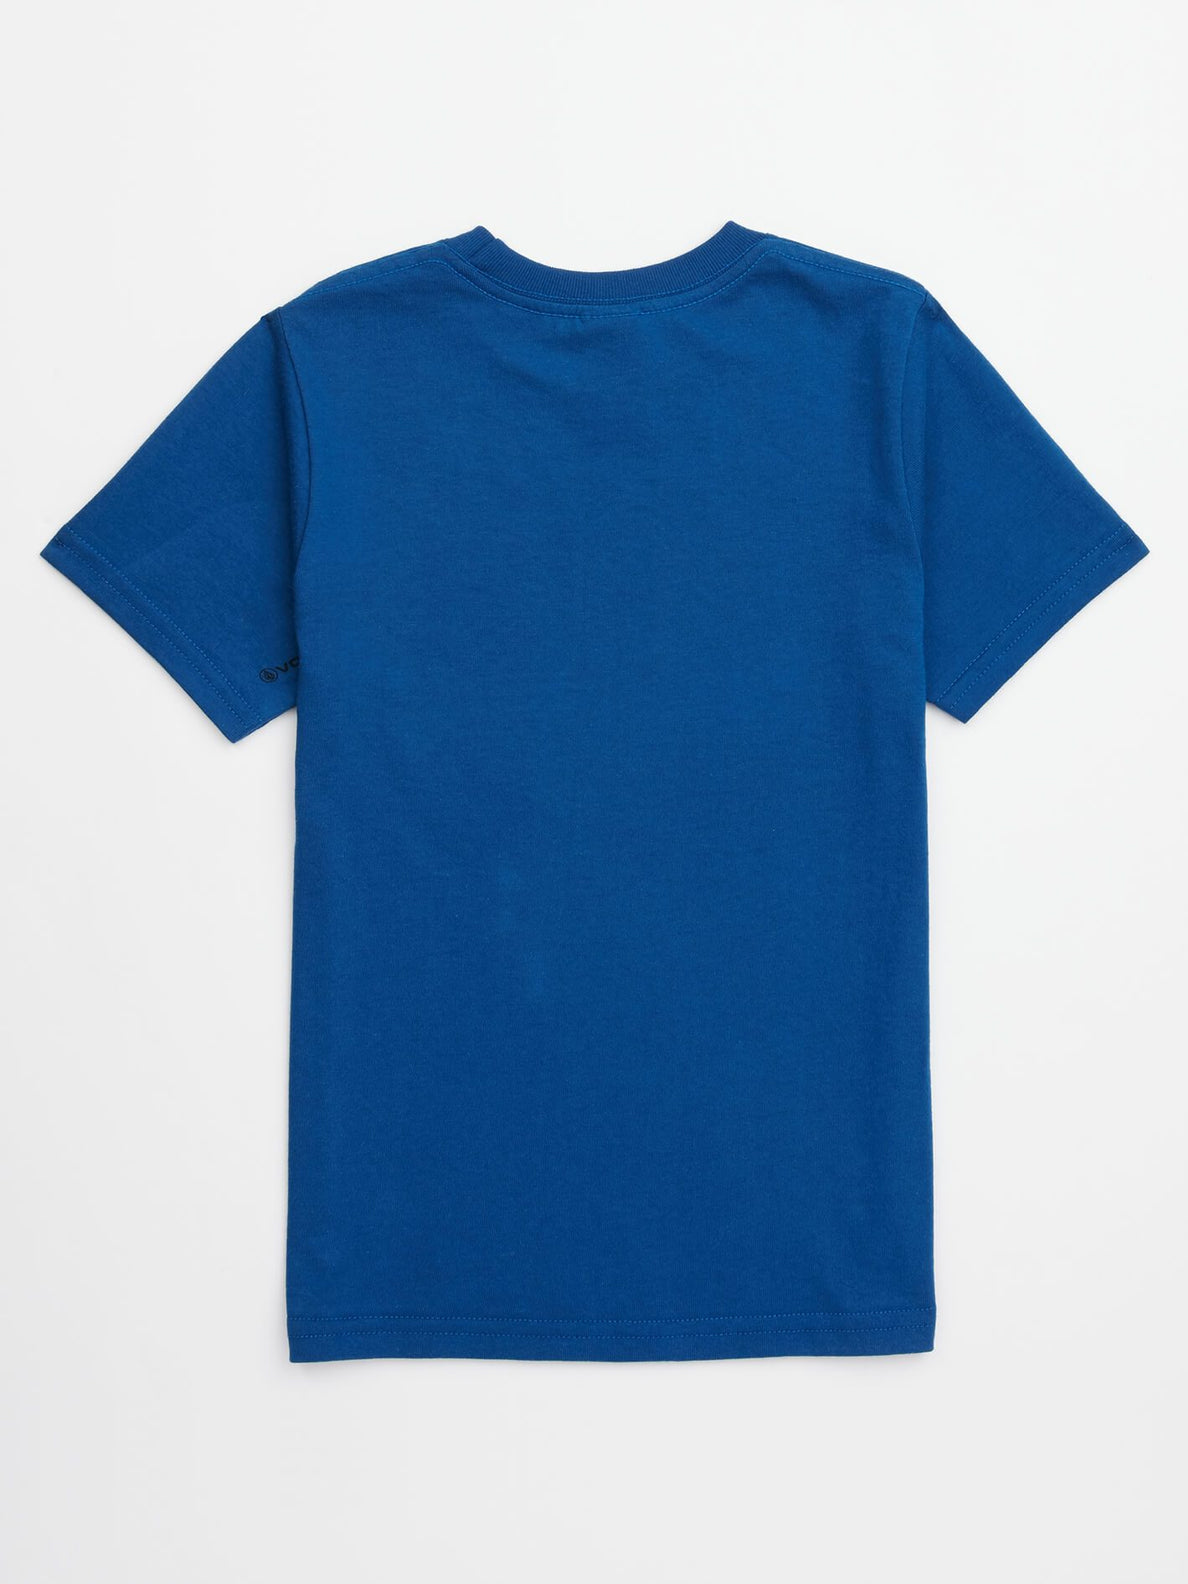 Little Boys Sound Tee In Camper Blue, Back View